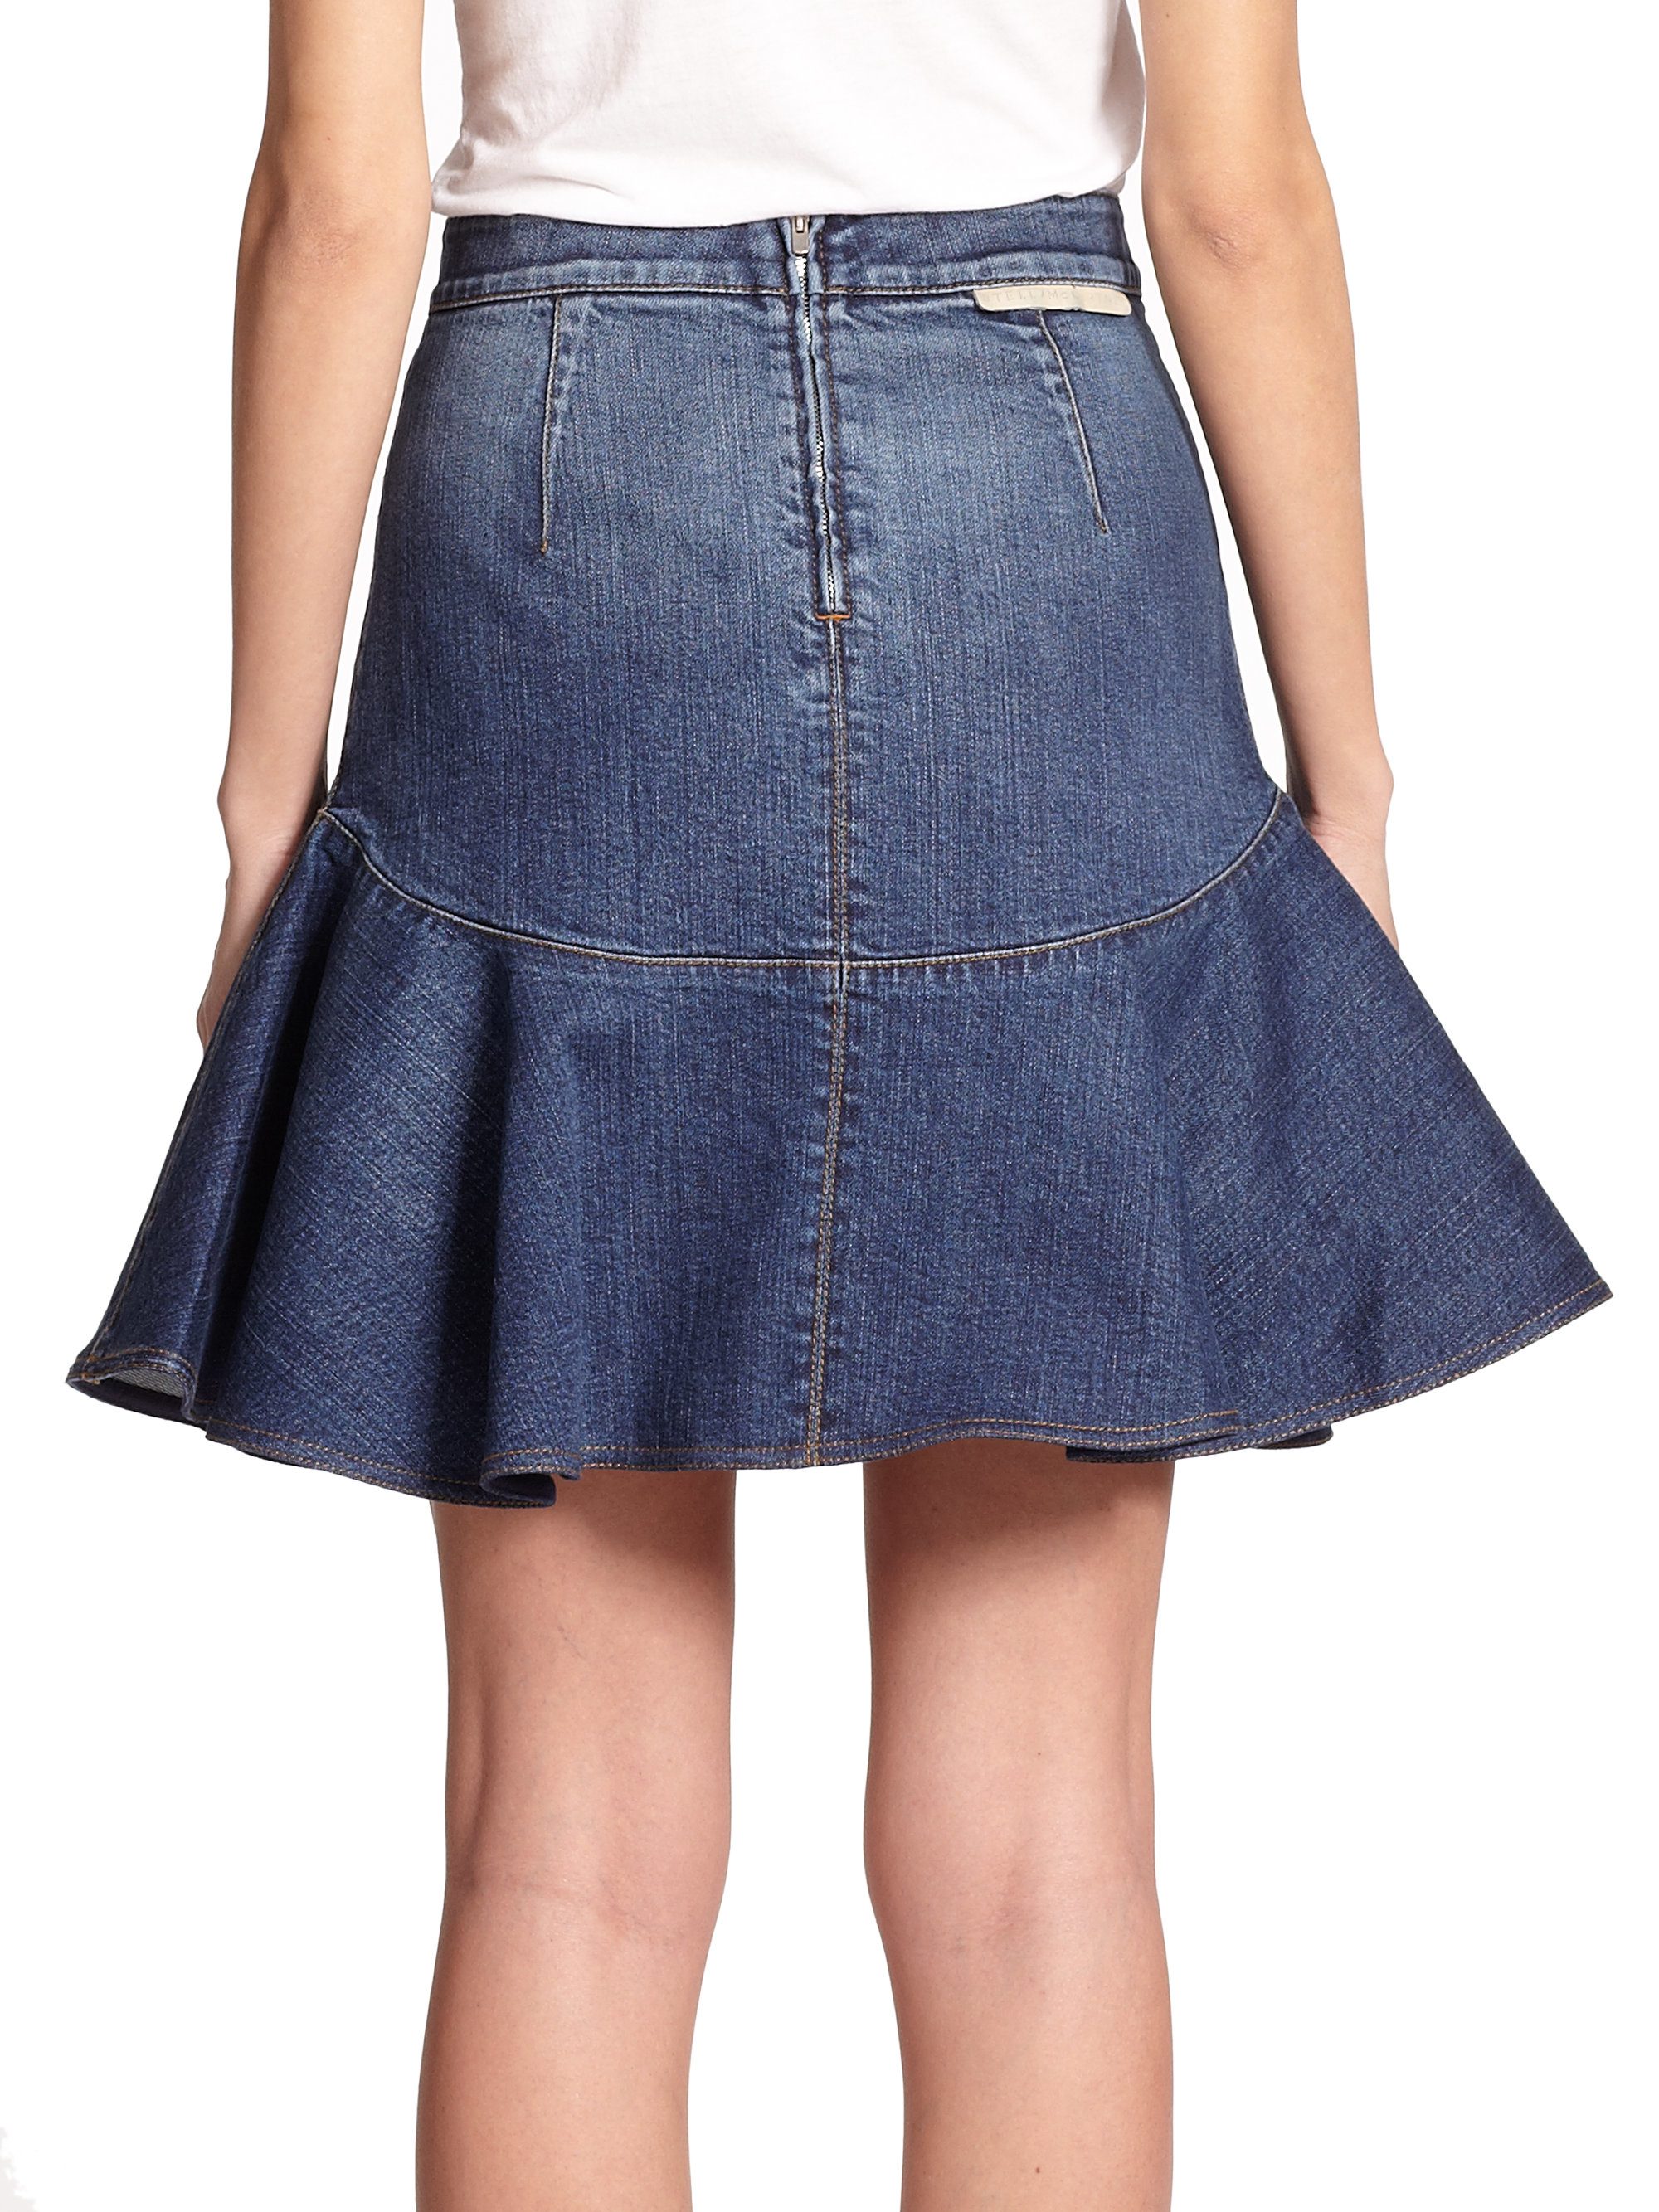 Stella mccartney Flared Denim Skirt in Blue | Lyst